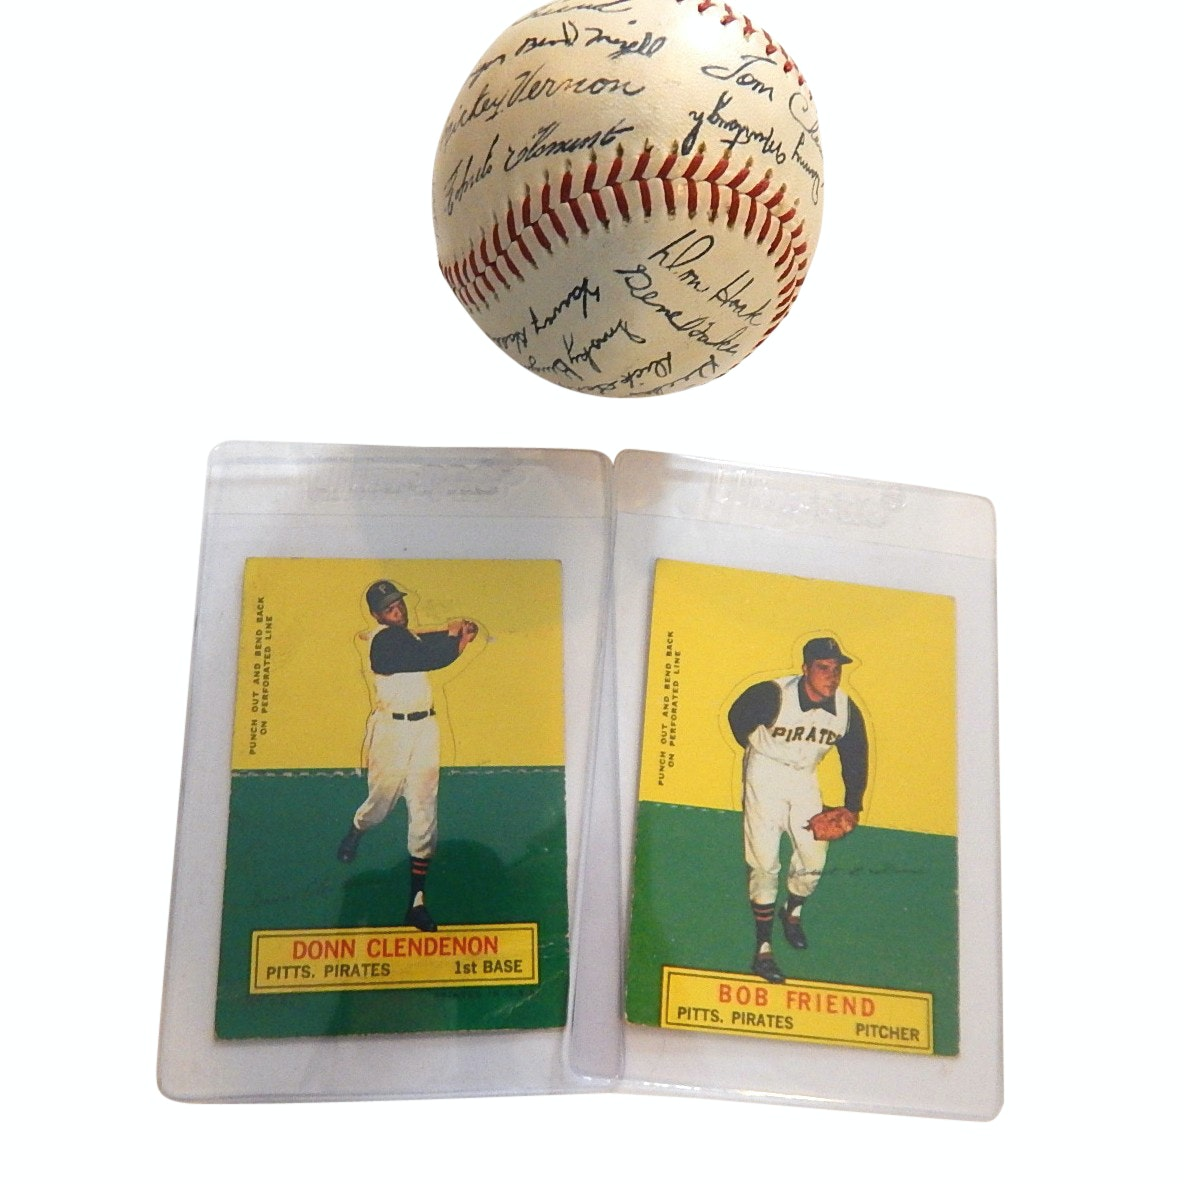 1950s/60s Era Pittsburgh Pirates Facsimile Baseball and Two 1964 Stand-Up Cards